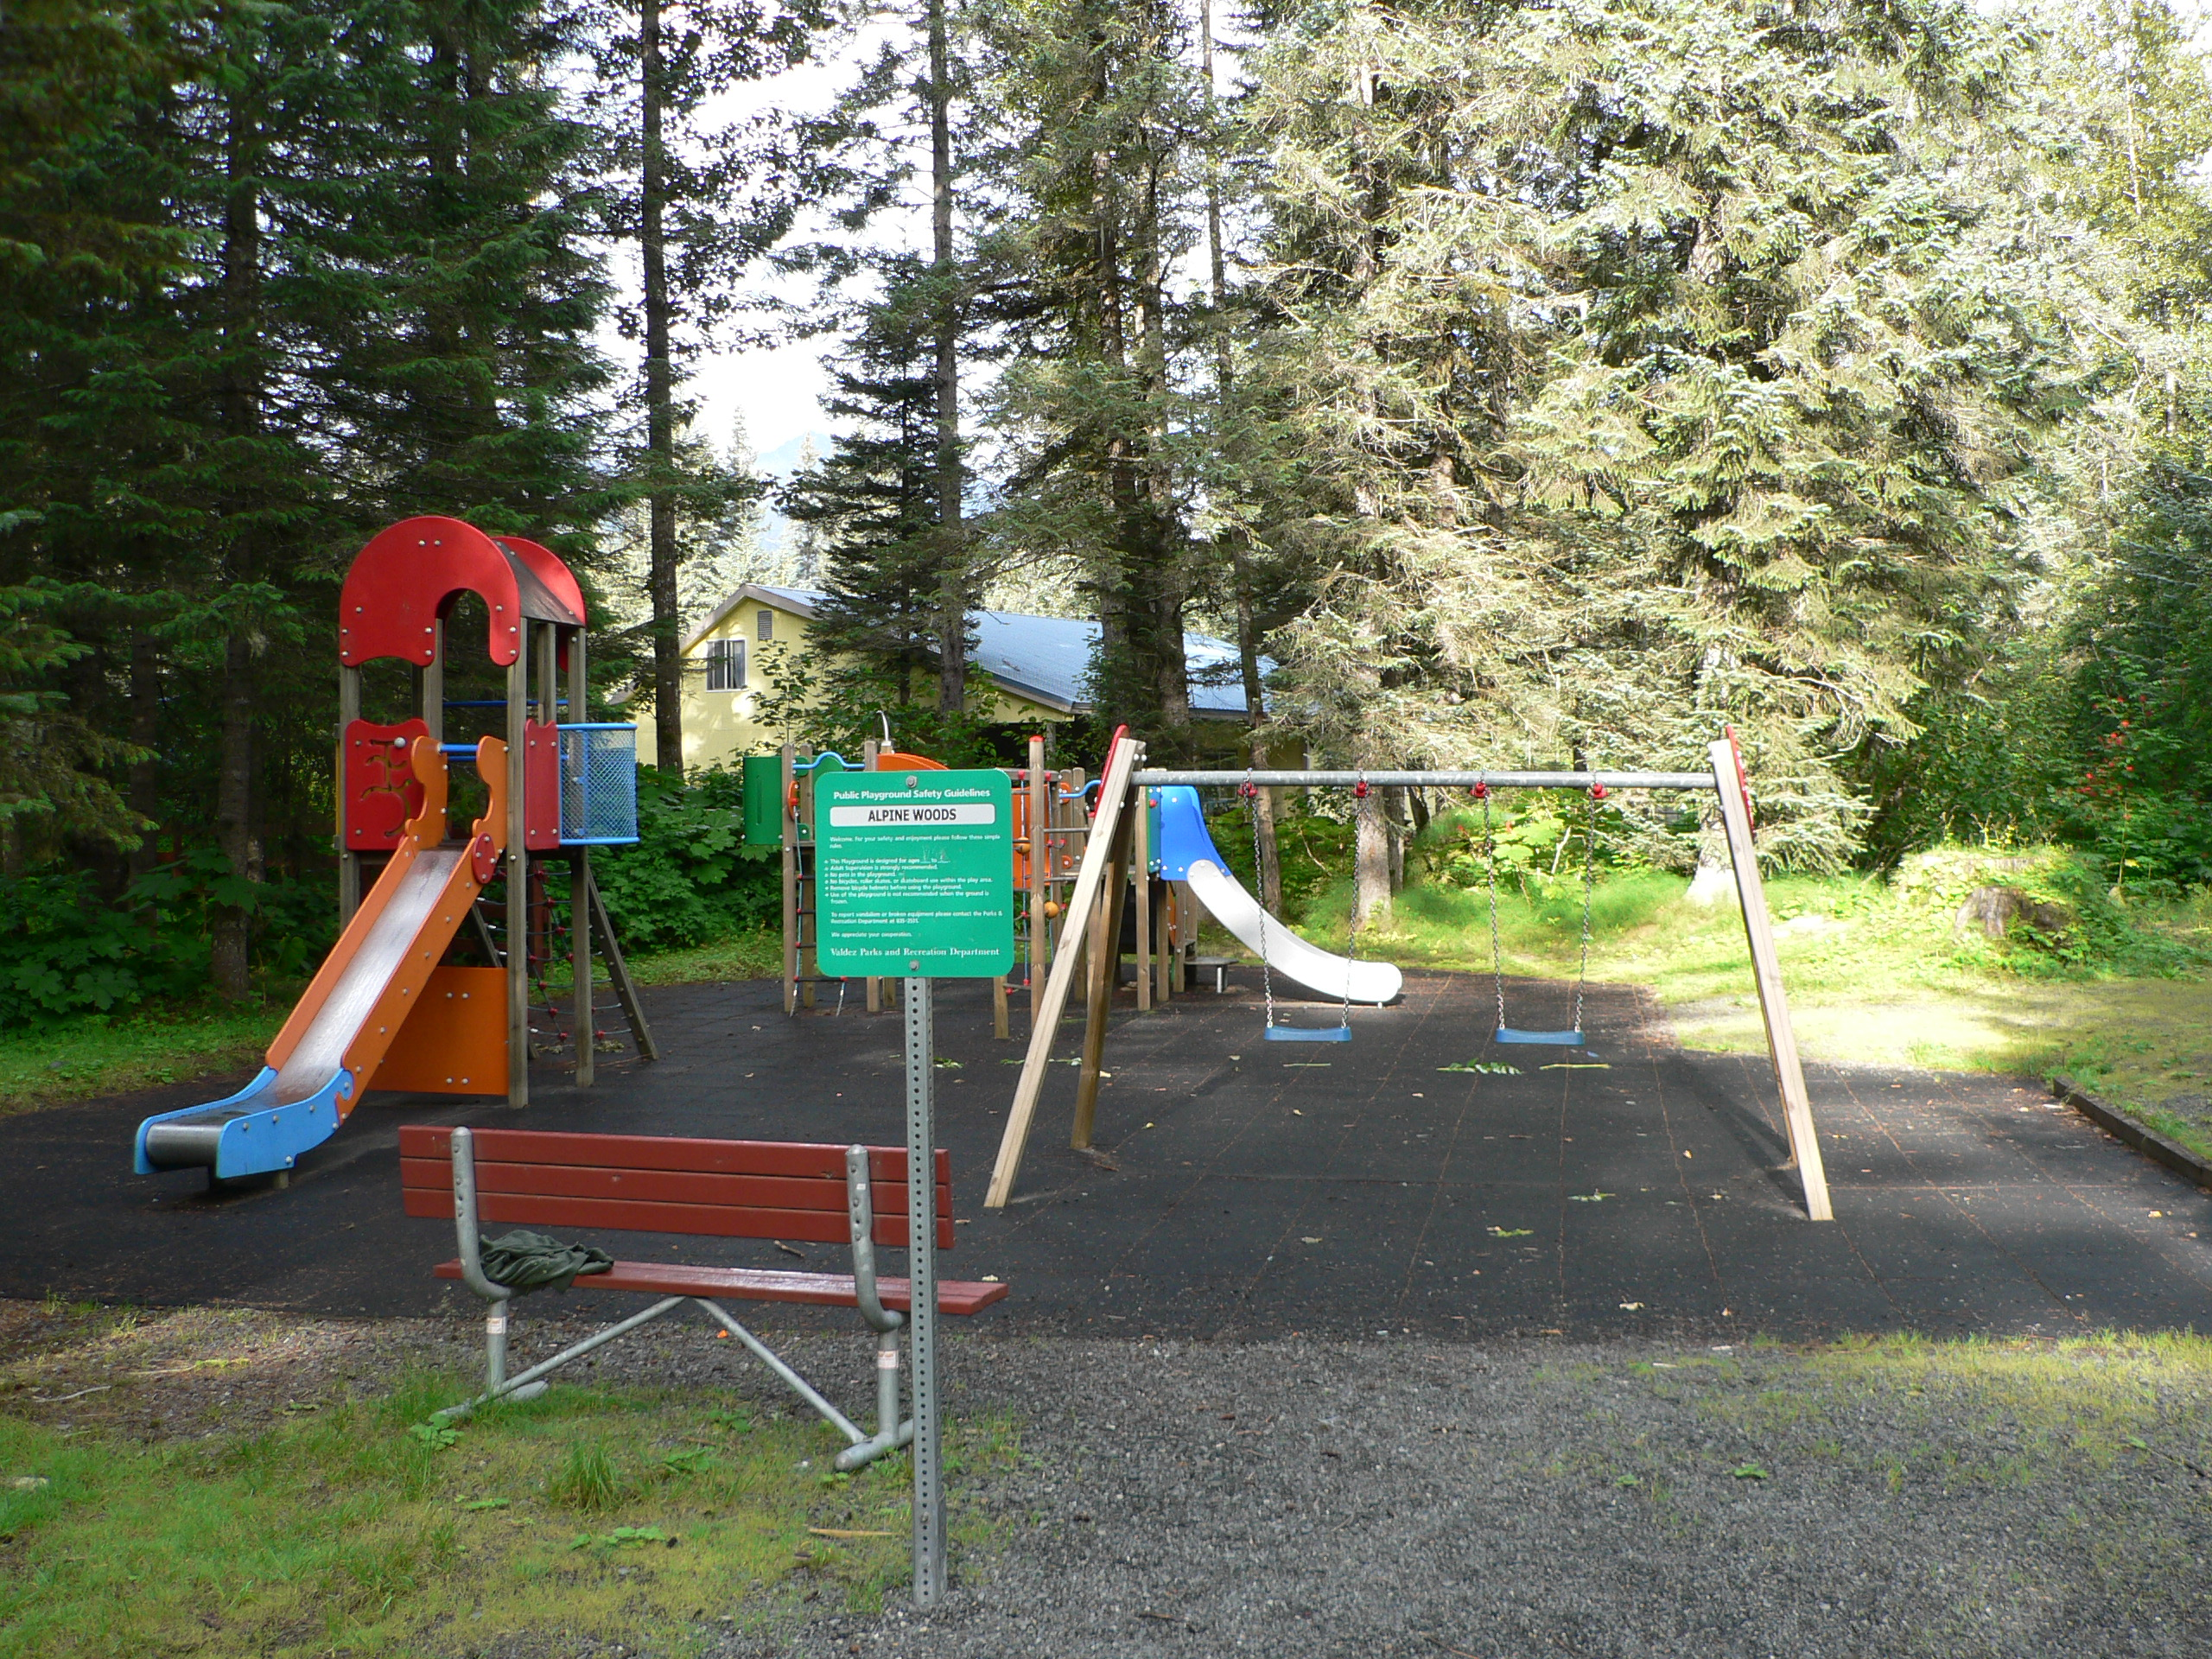 Alpine woods playground 1